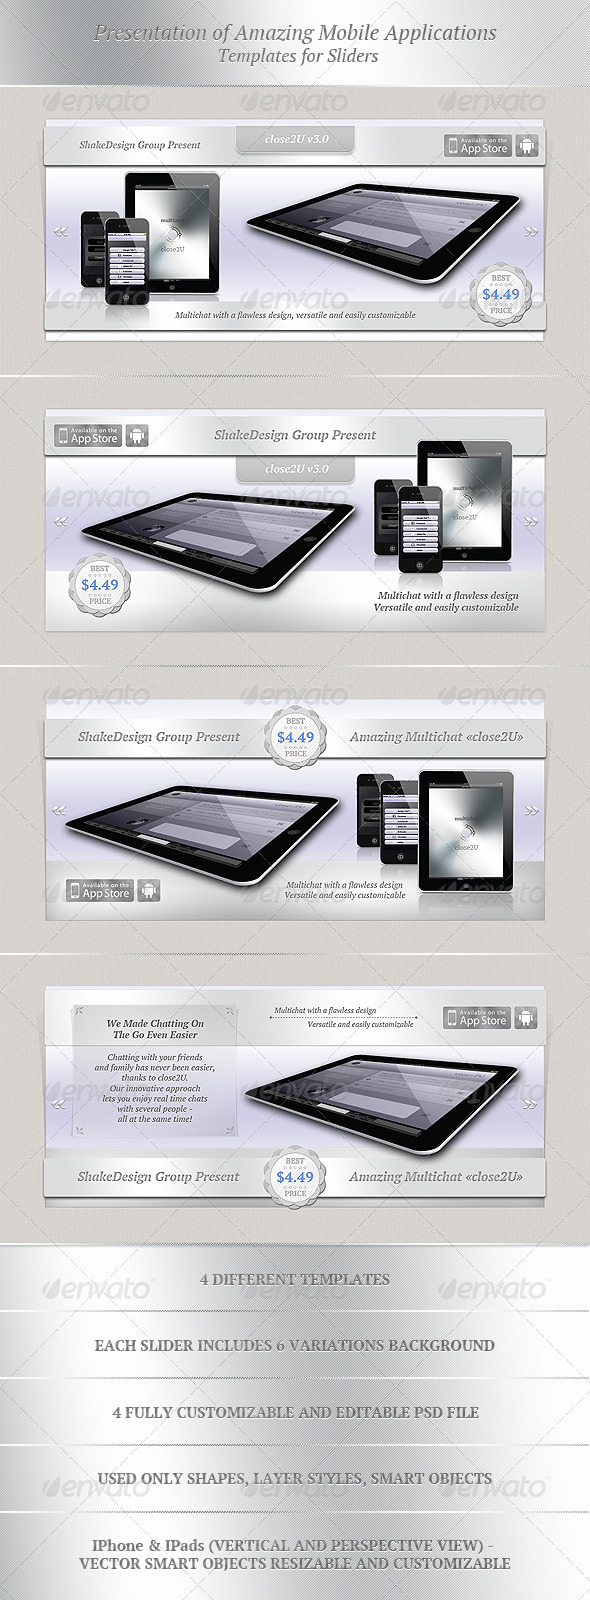 Presentation of Amazing Mobile Applications - Sliders & Features Web Elements